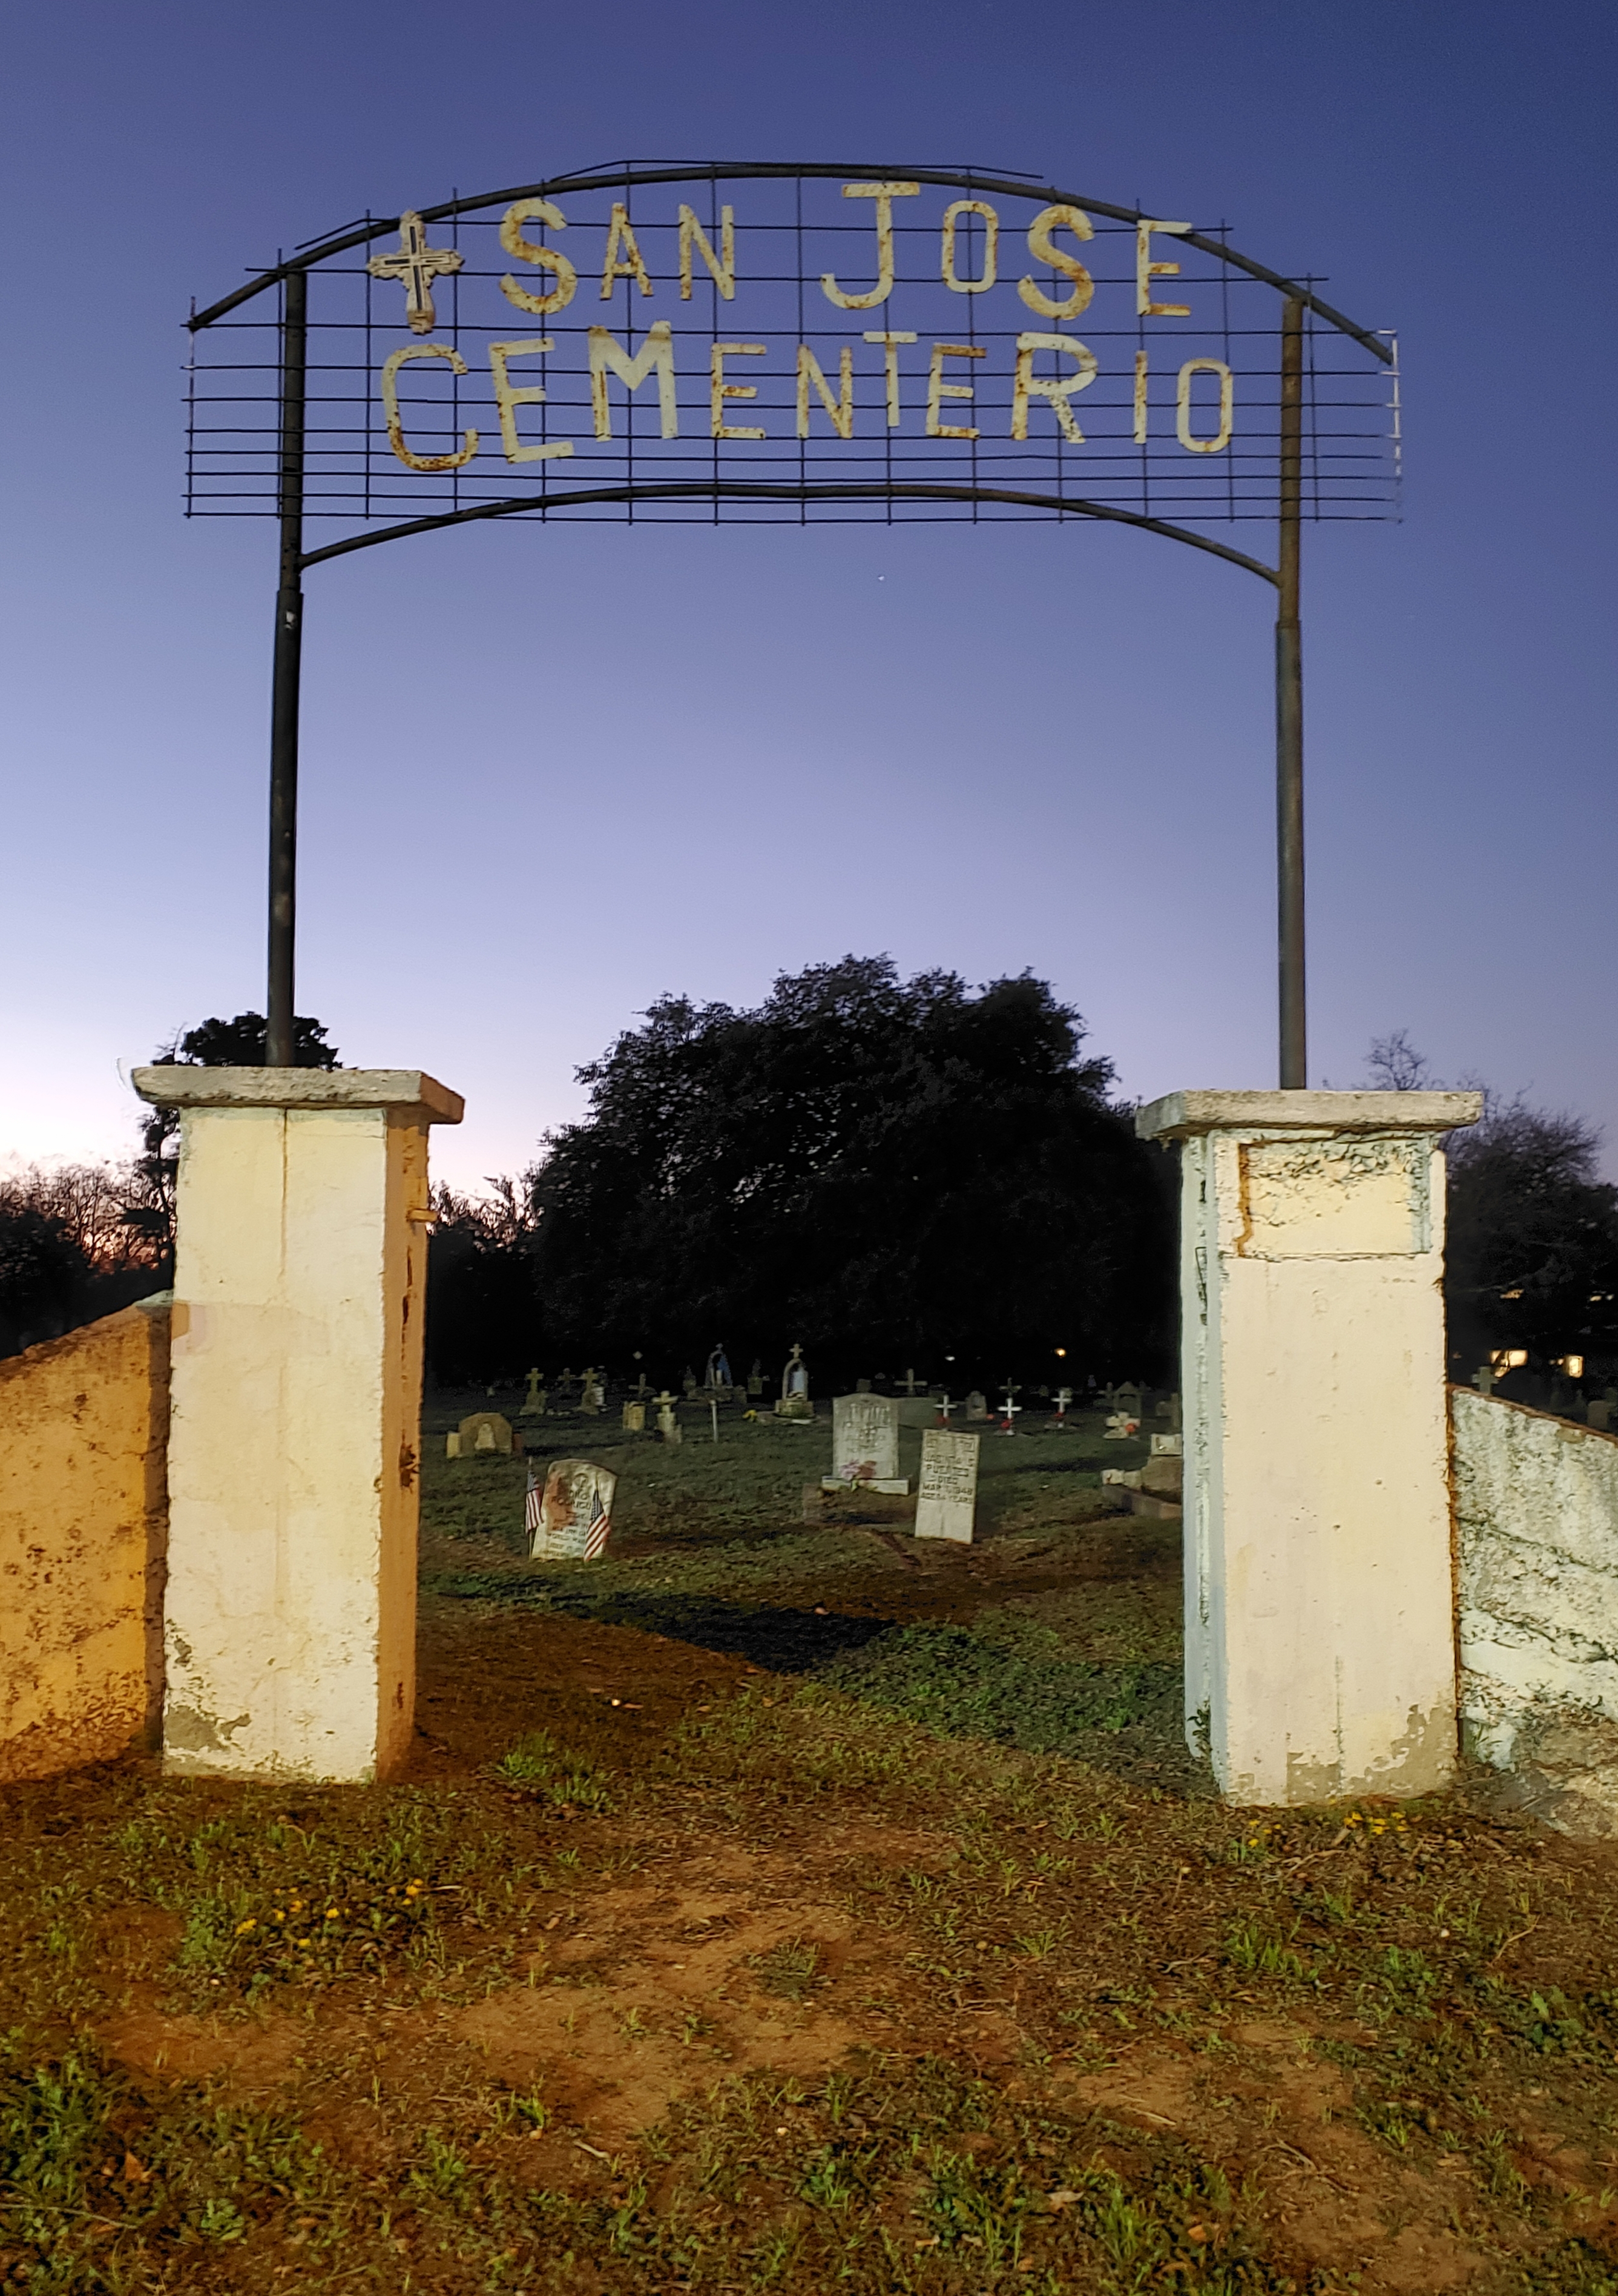 Entrance to the San Jose Cemetery in the Montopolis area of Southeast Austin, looking in through the entryway of the cemetery at dusk, with graves in the background